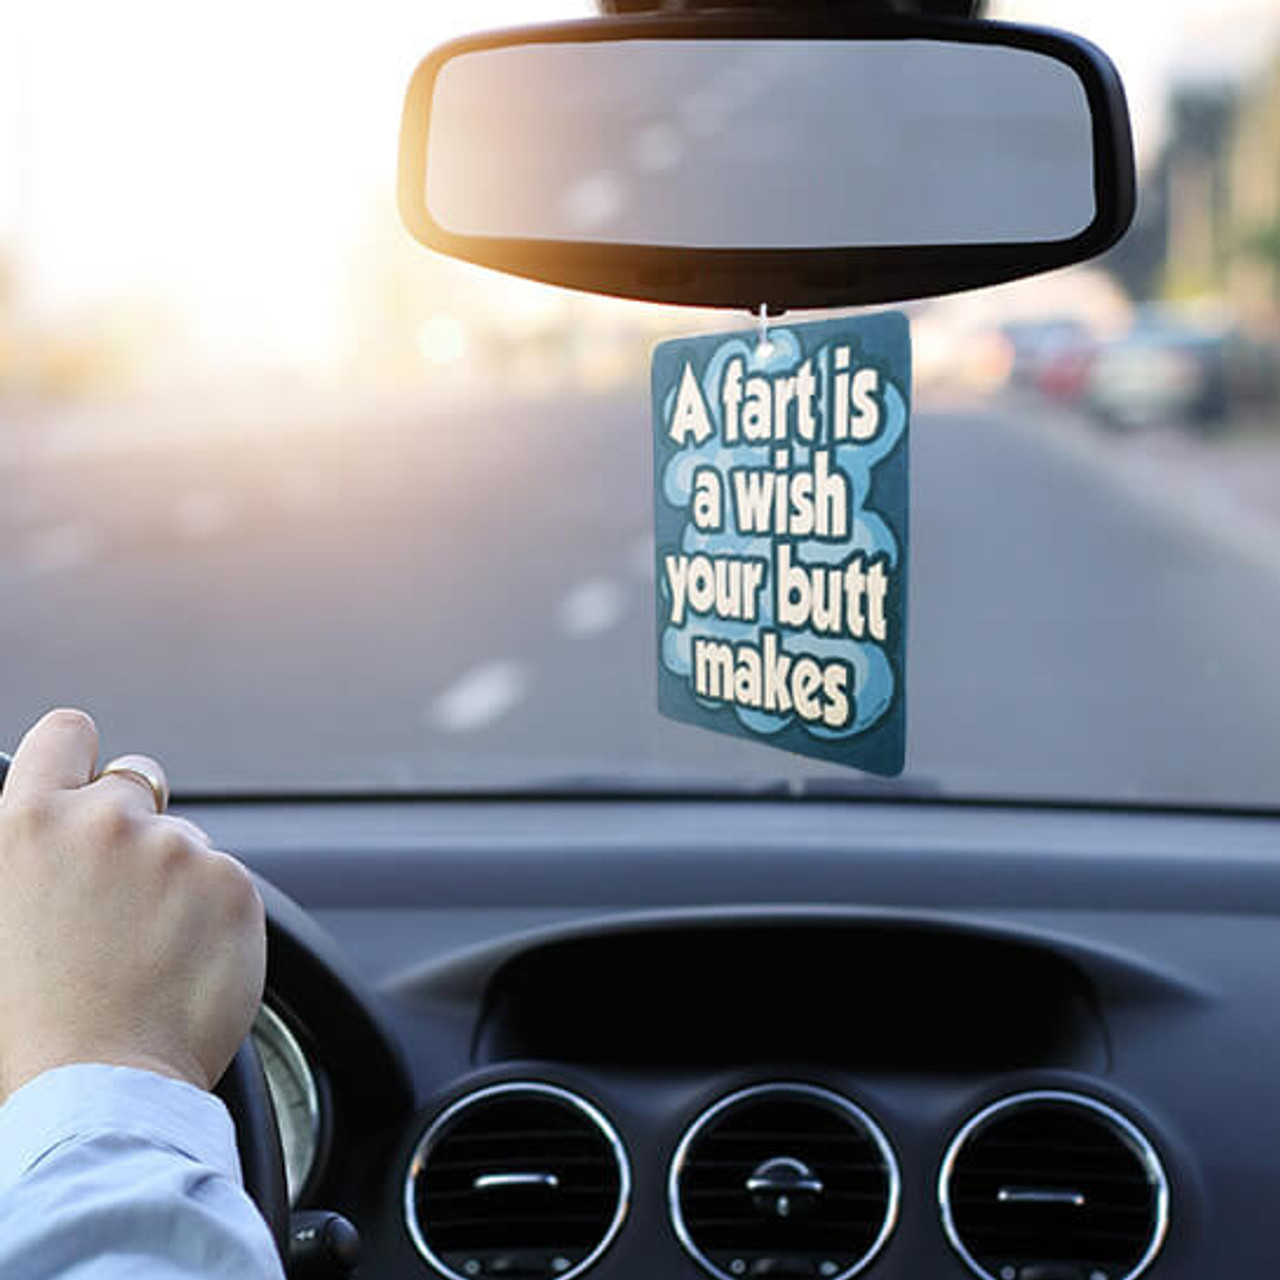 A FART IS A WISH YOUR BUTT MAKES AIR FRESHENER